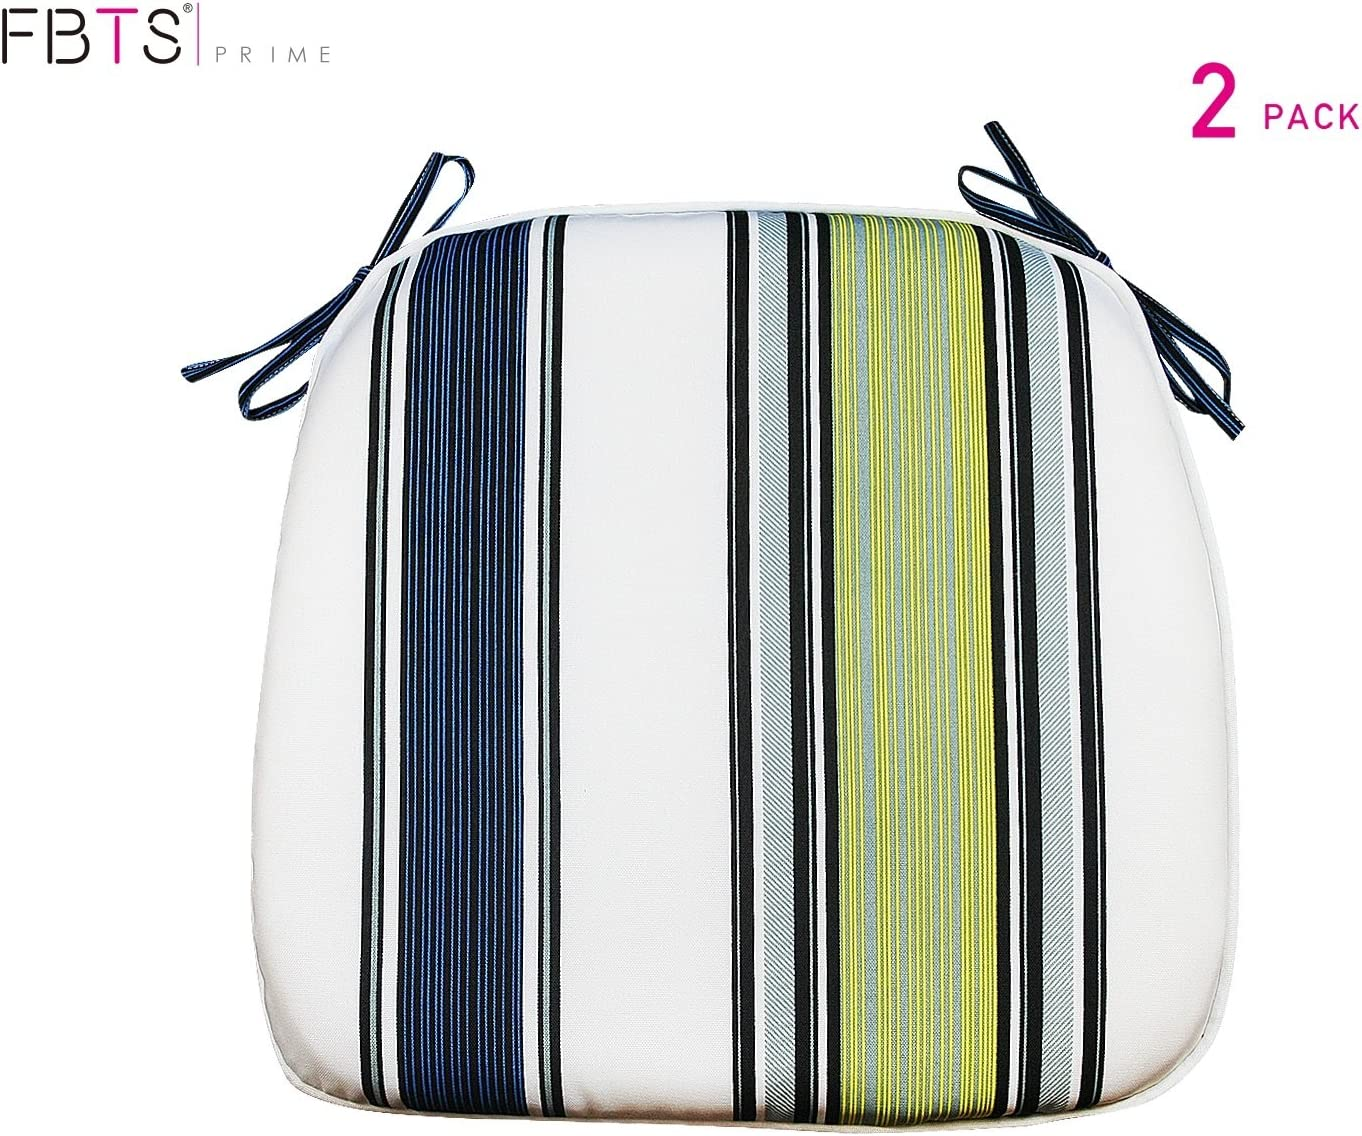 FBTS Prime Outdoor Chair Cushions (Set of 2) 16x17 Inches Patio Seat Cushions Navy Yellow and White Stripe Square Chair Pads for Outdoor Patio Furniture Garden Home Office